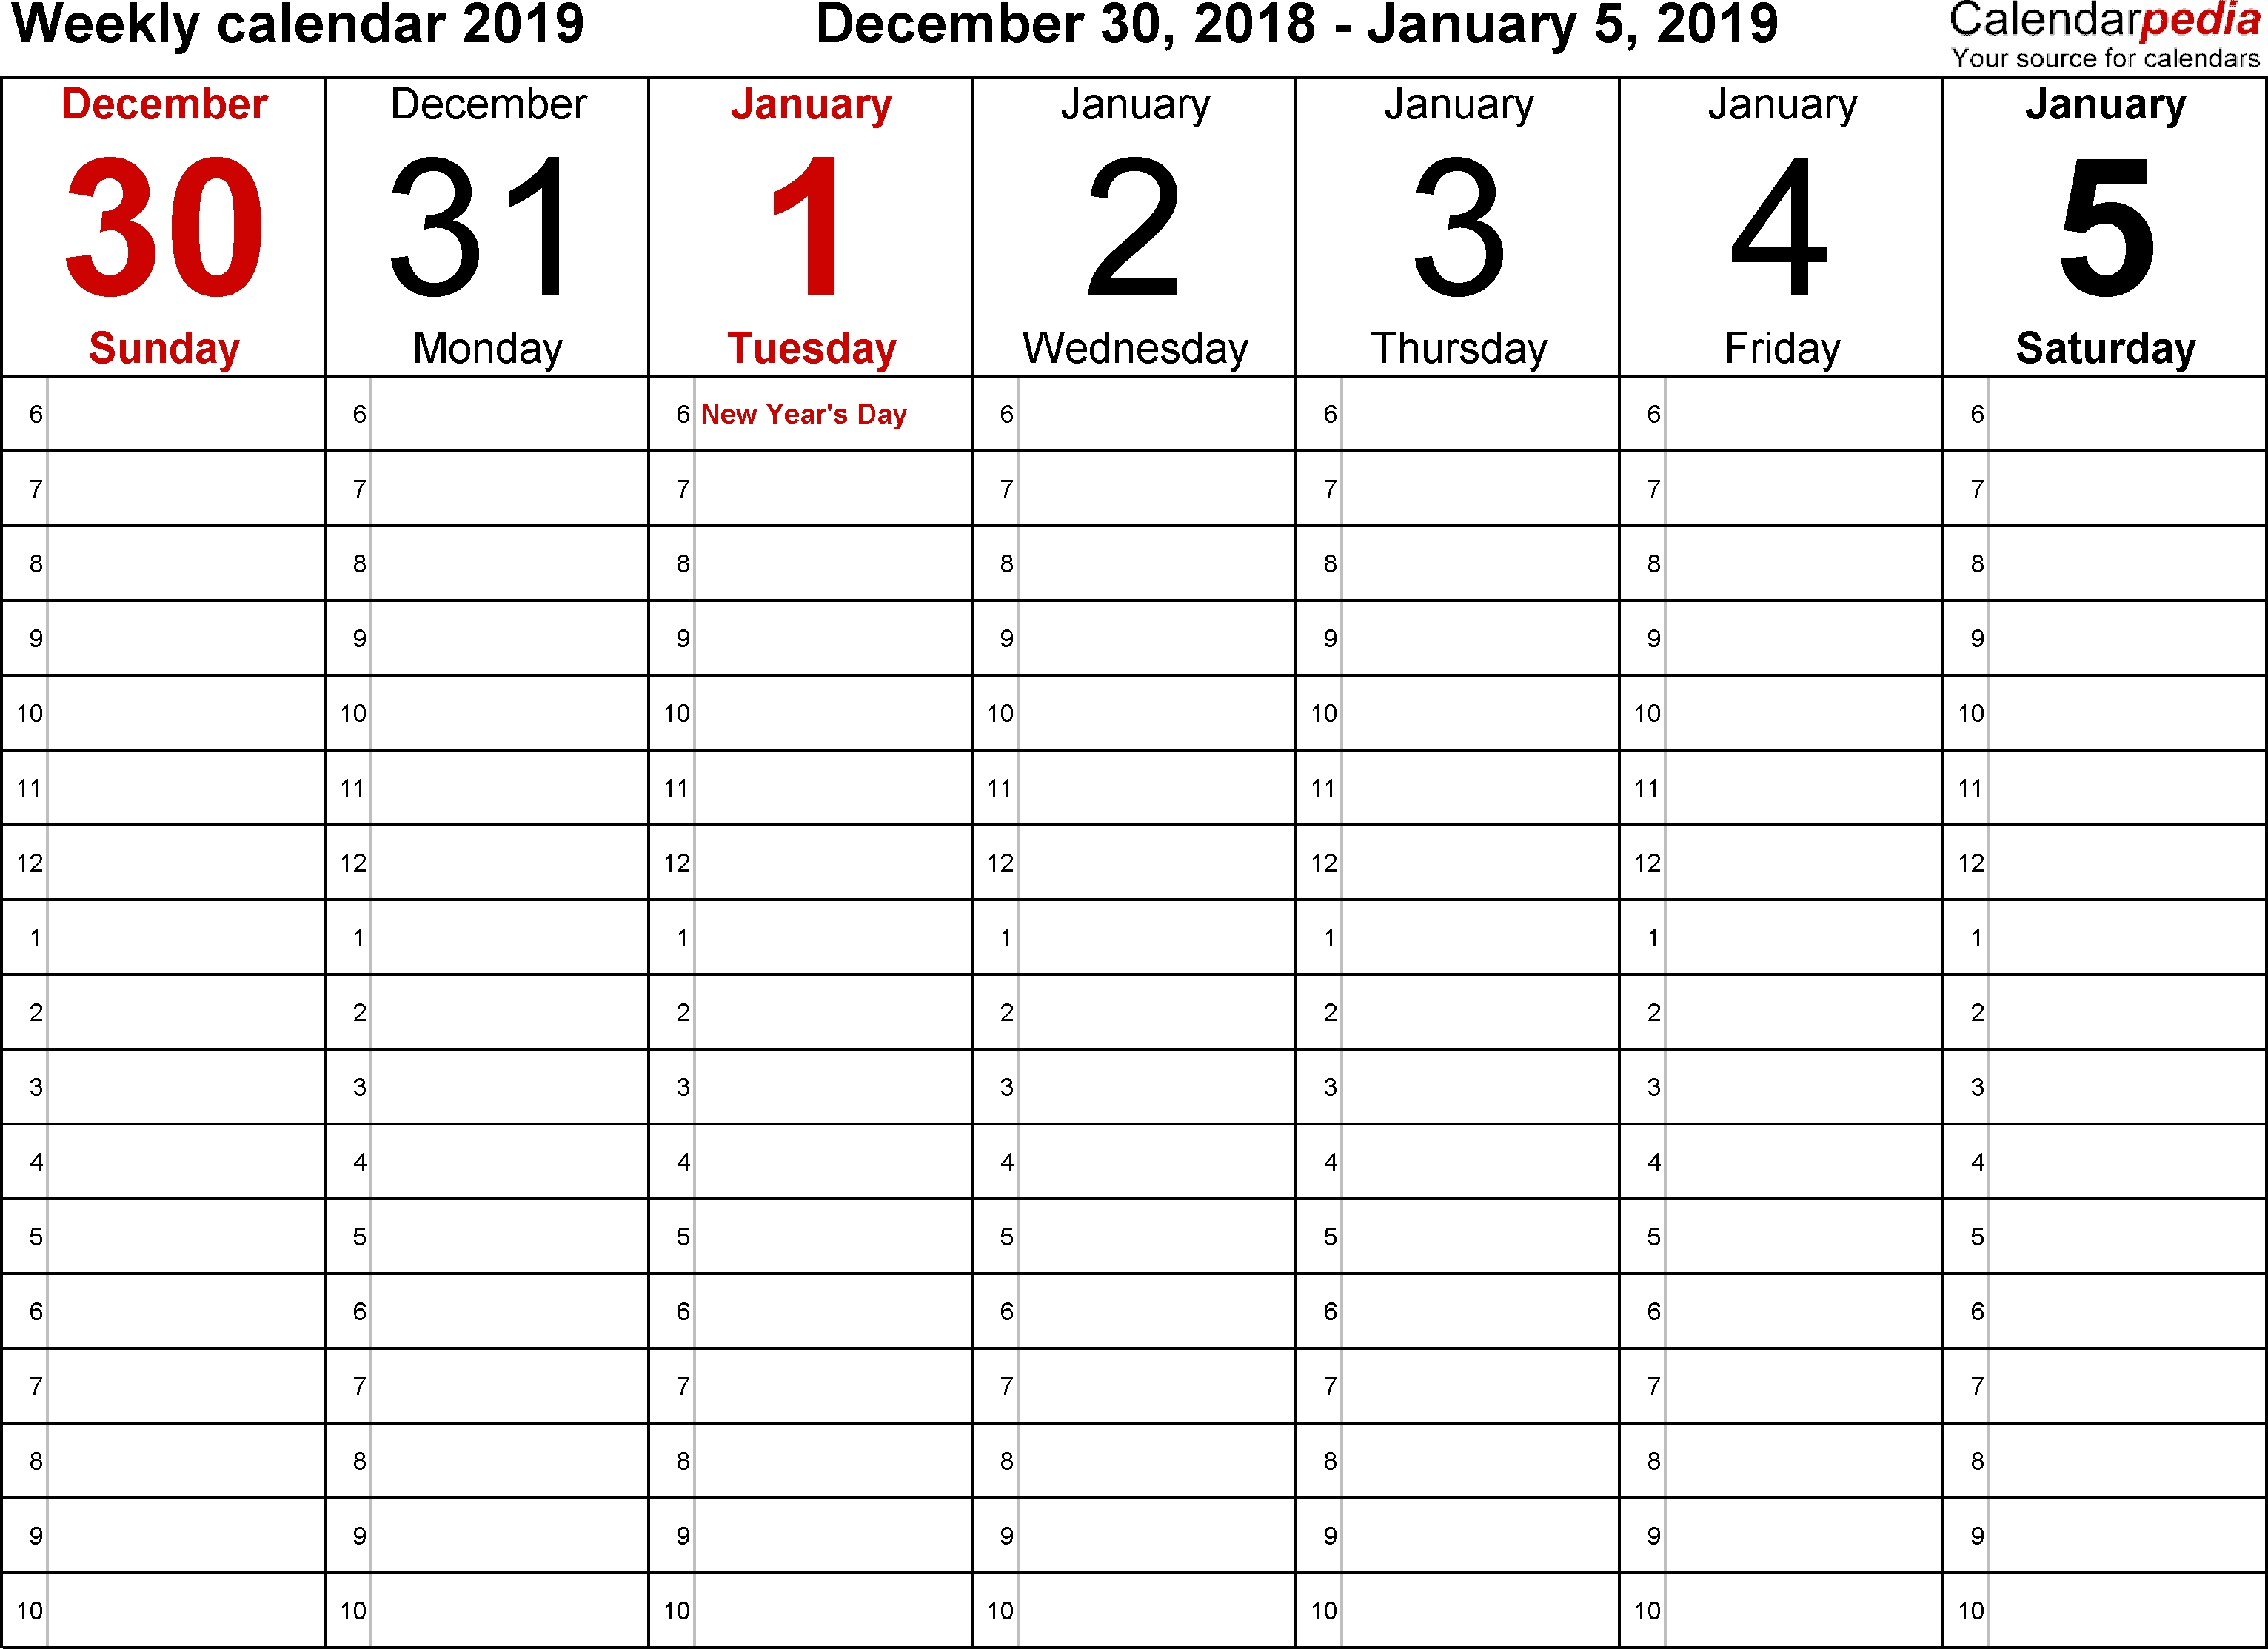 Weekly Calendars 2019 For Word - 12 Free Printable Templates-Printable Monthly Calendar 5X8